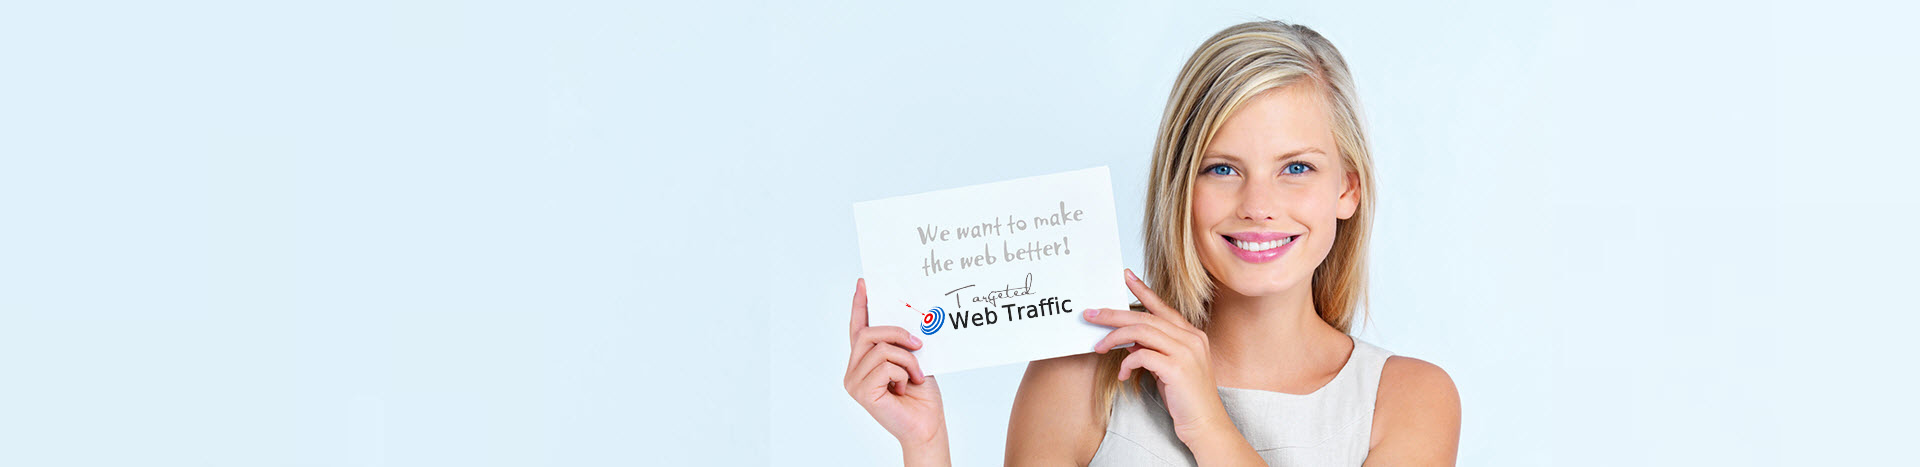 targeted-web-traffic-that-converts-1920x4671